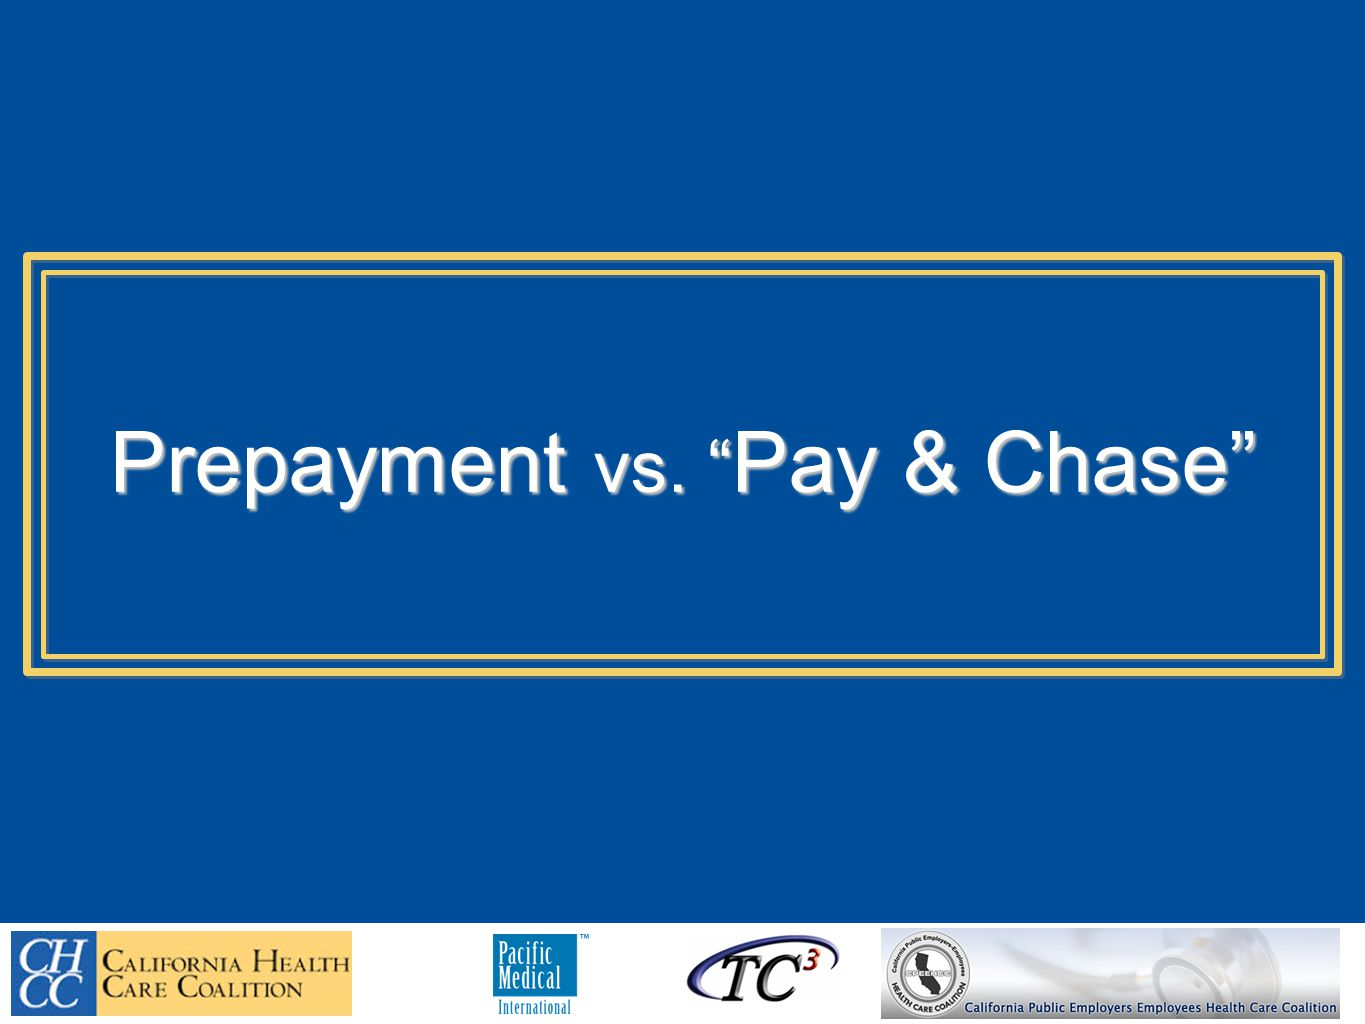 Prepayment vs. Pay & Chase